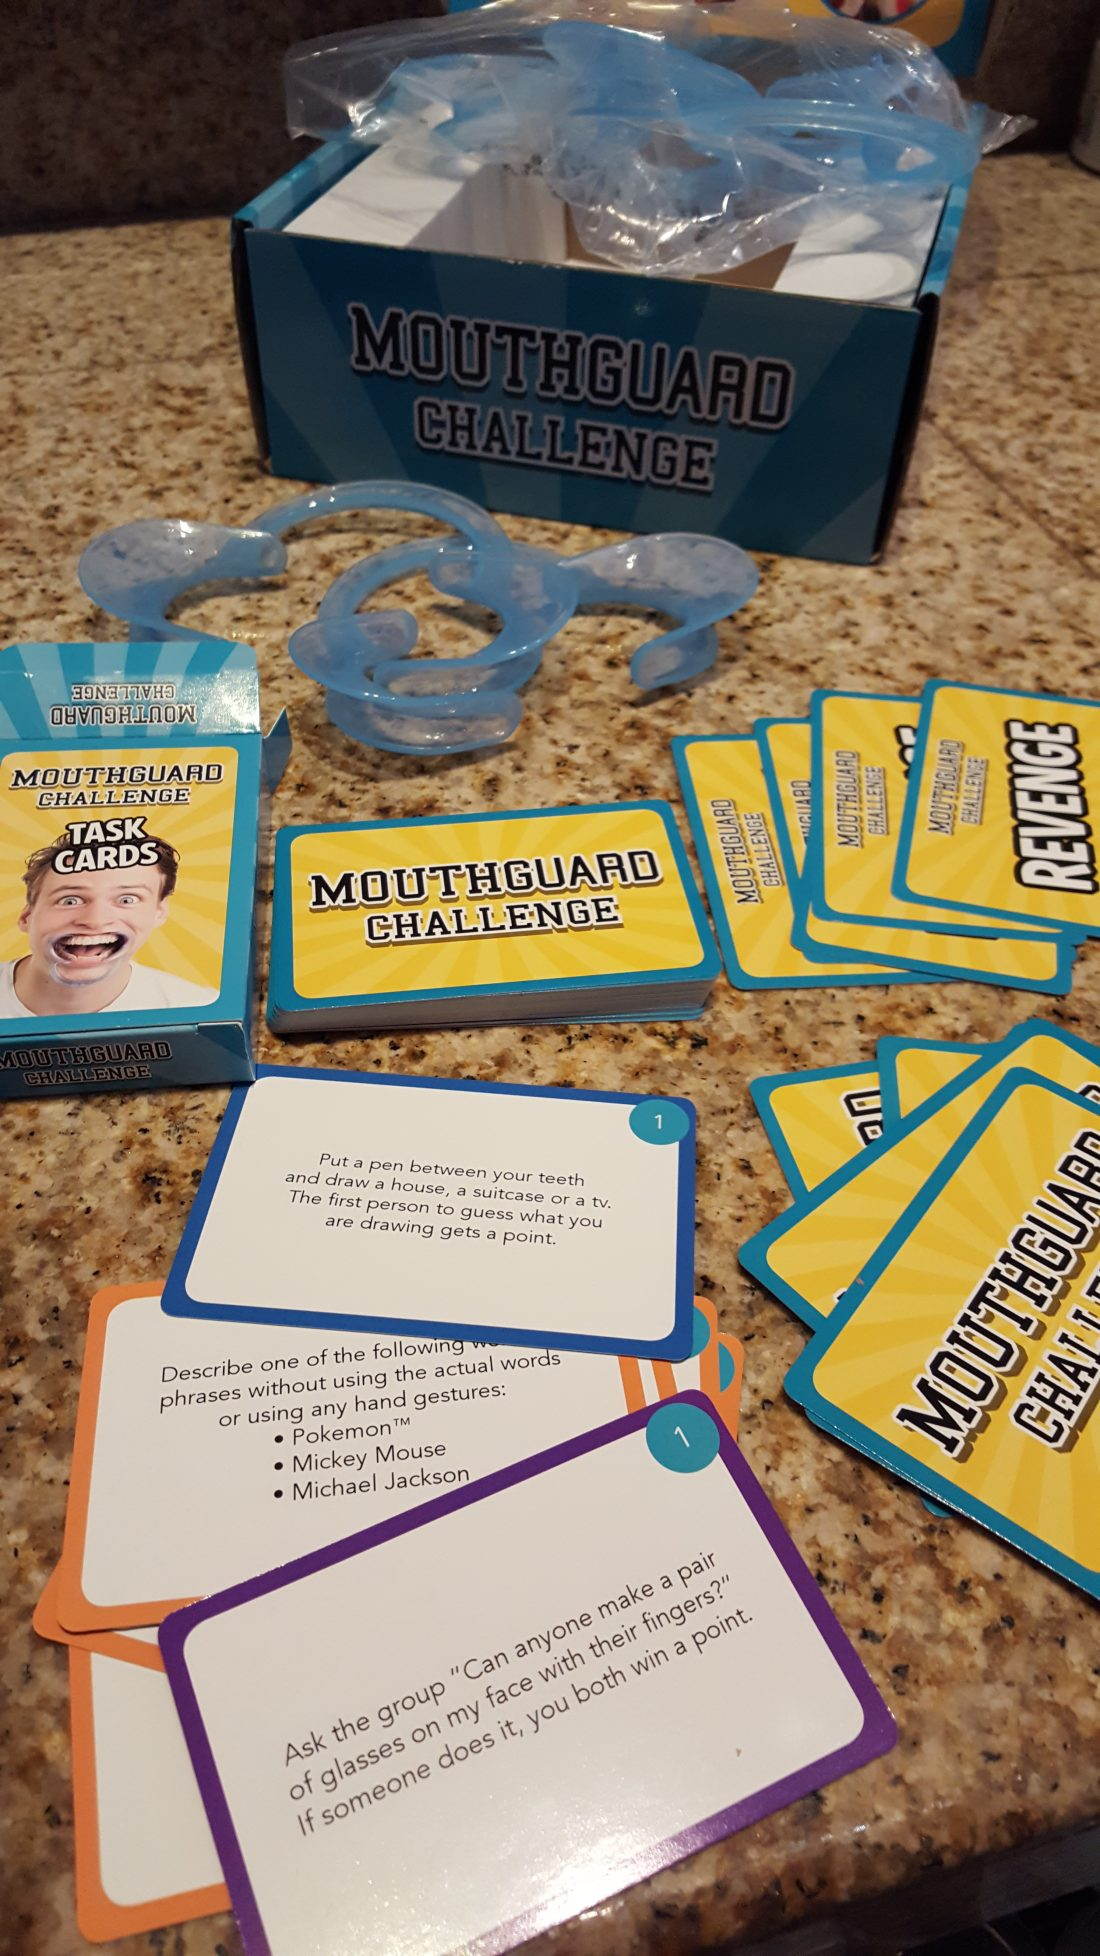 Mouthguard Challenge Phrases : mouthguard, challenge, phrases, Worthy, Christmas}, Hilarious, Mouthguard, Challenge, Makes, Perfect, Holiday, Gift!